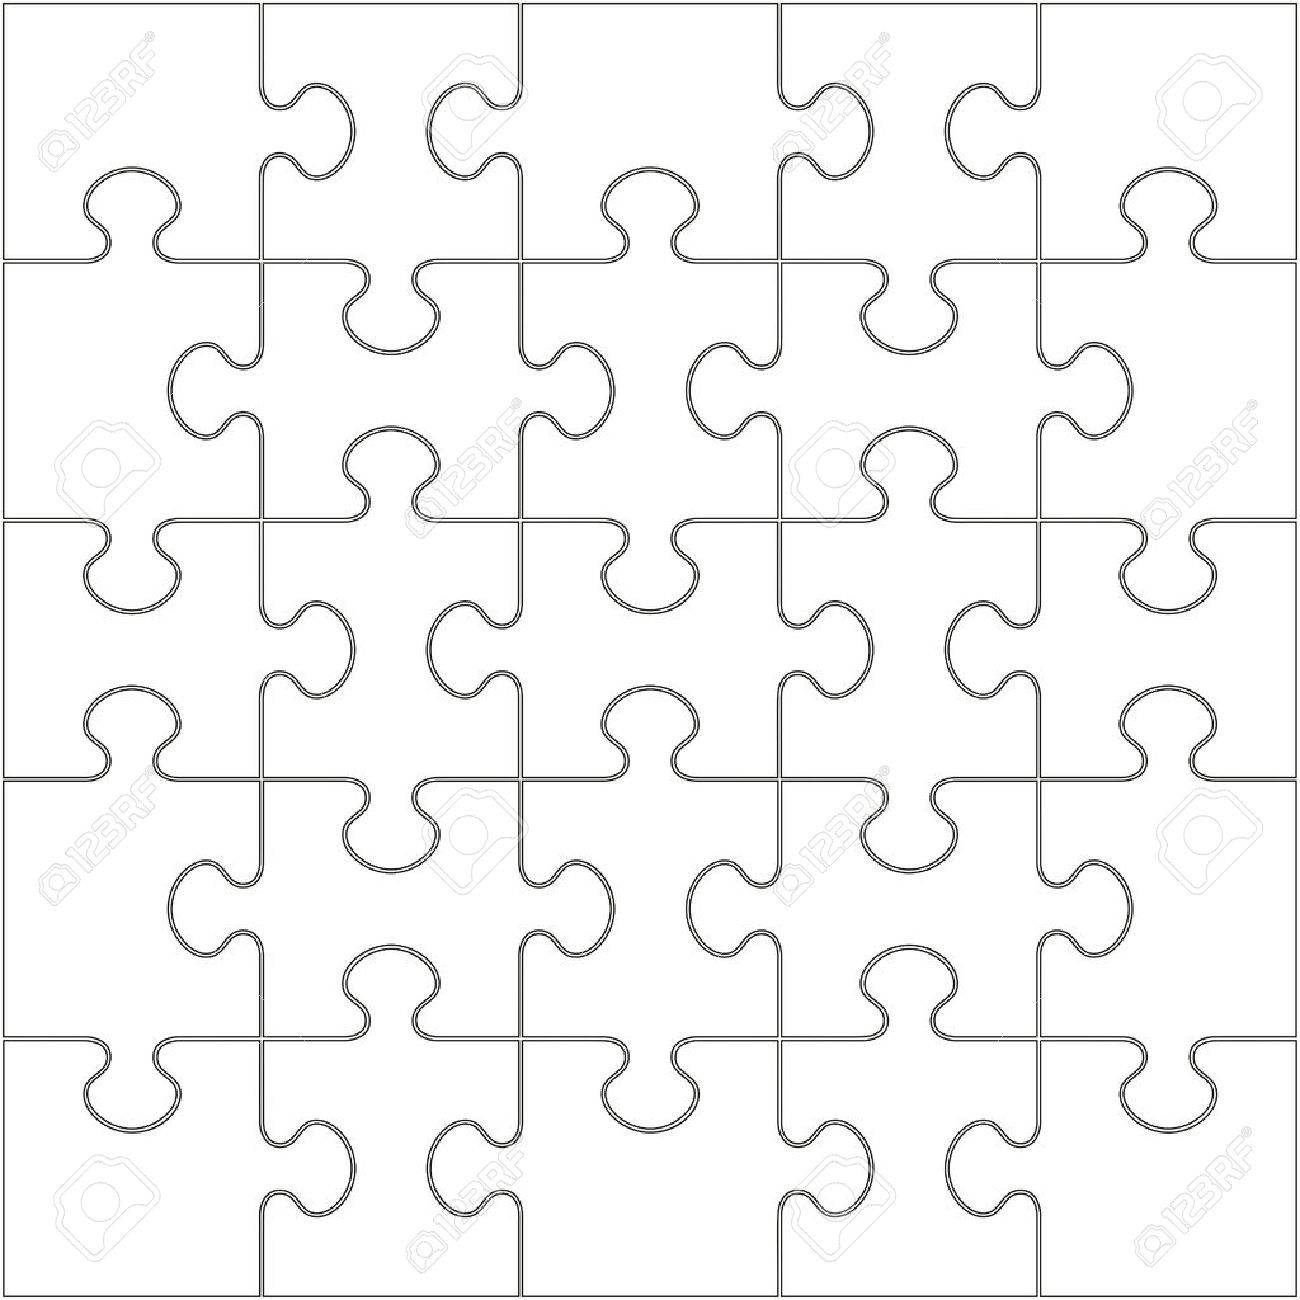 25 White Puzzle Pieces Arranged In A Square